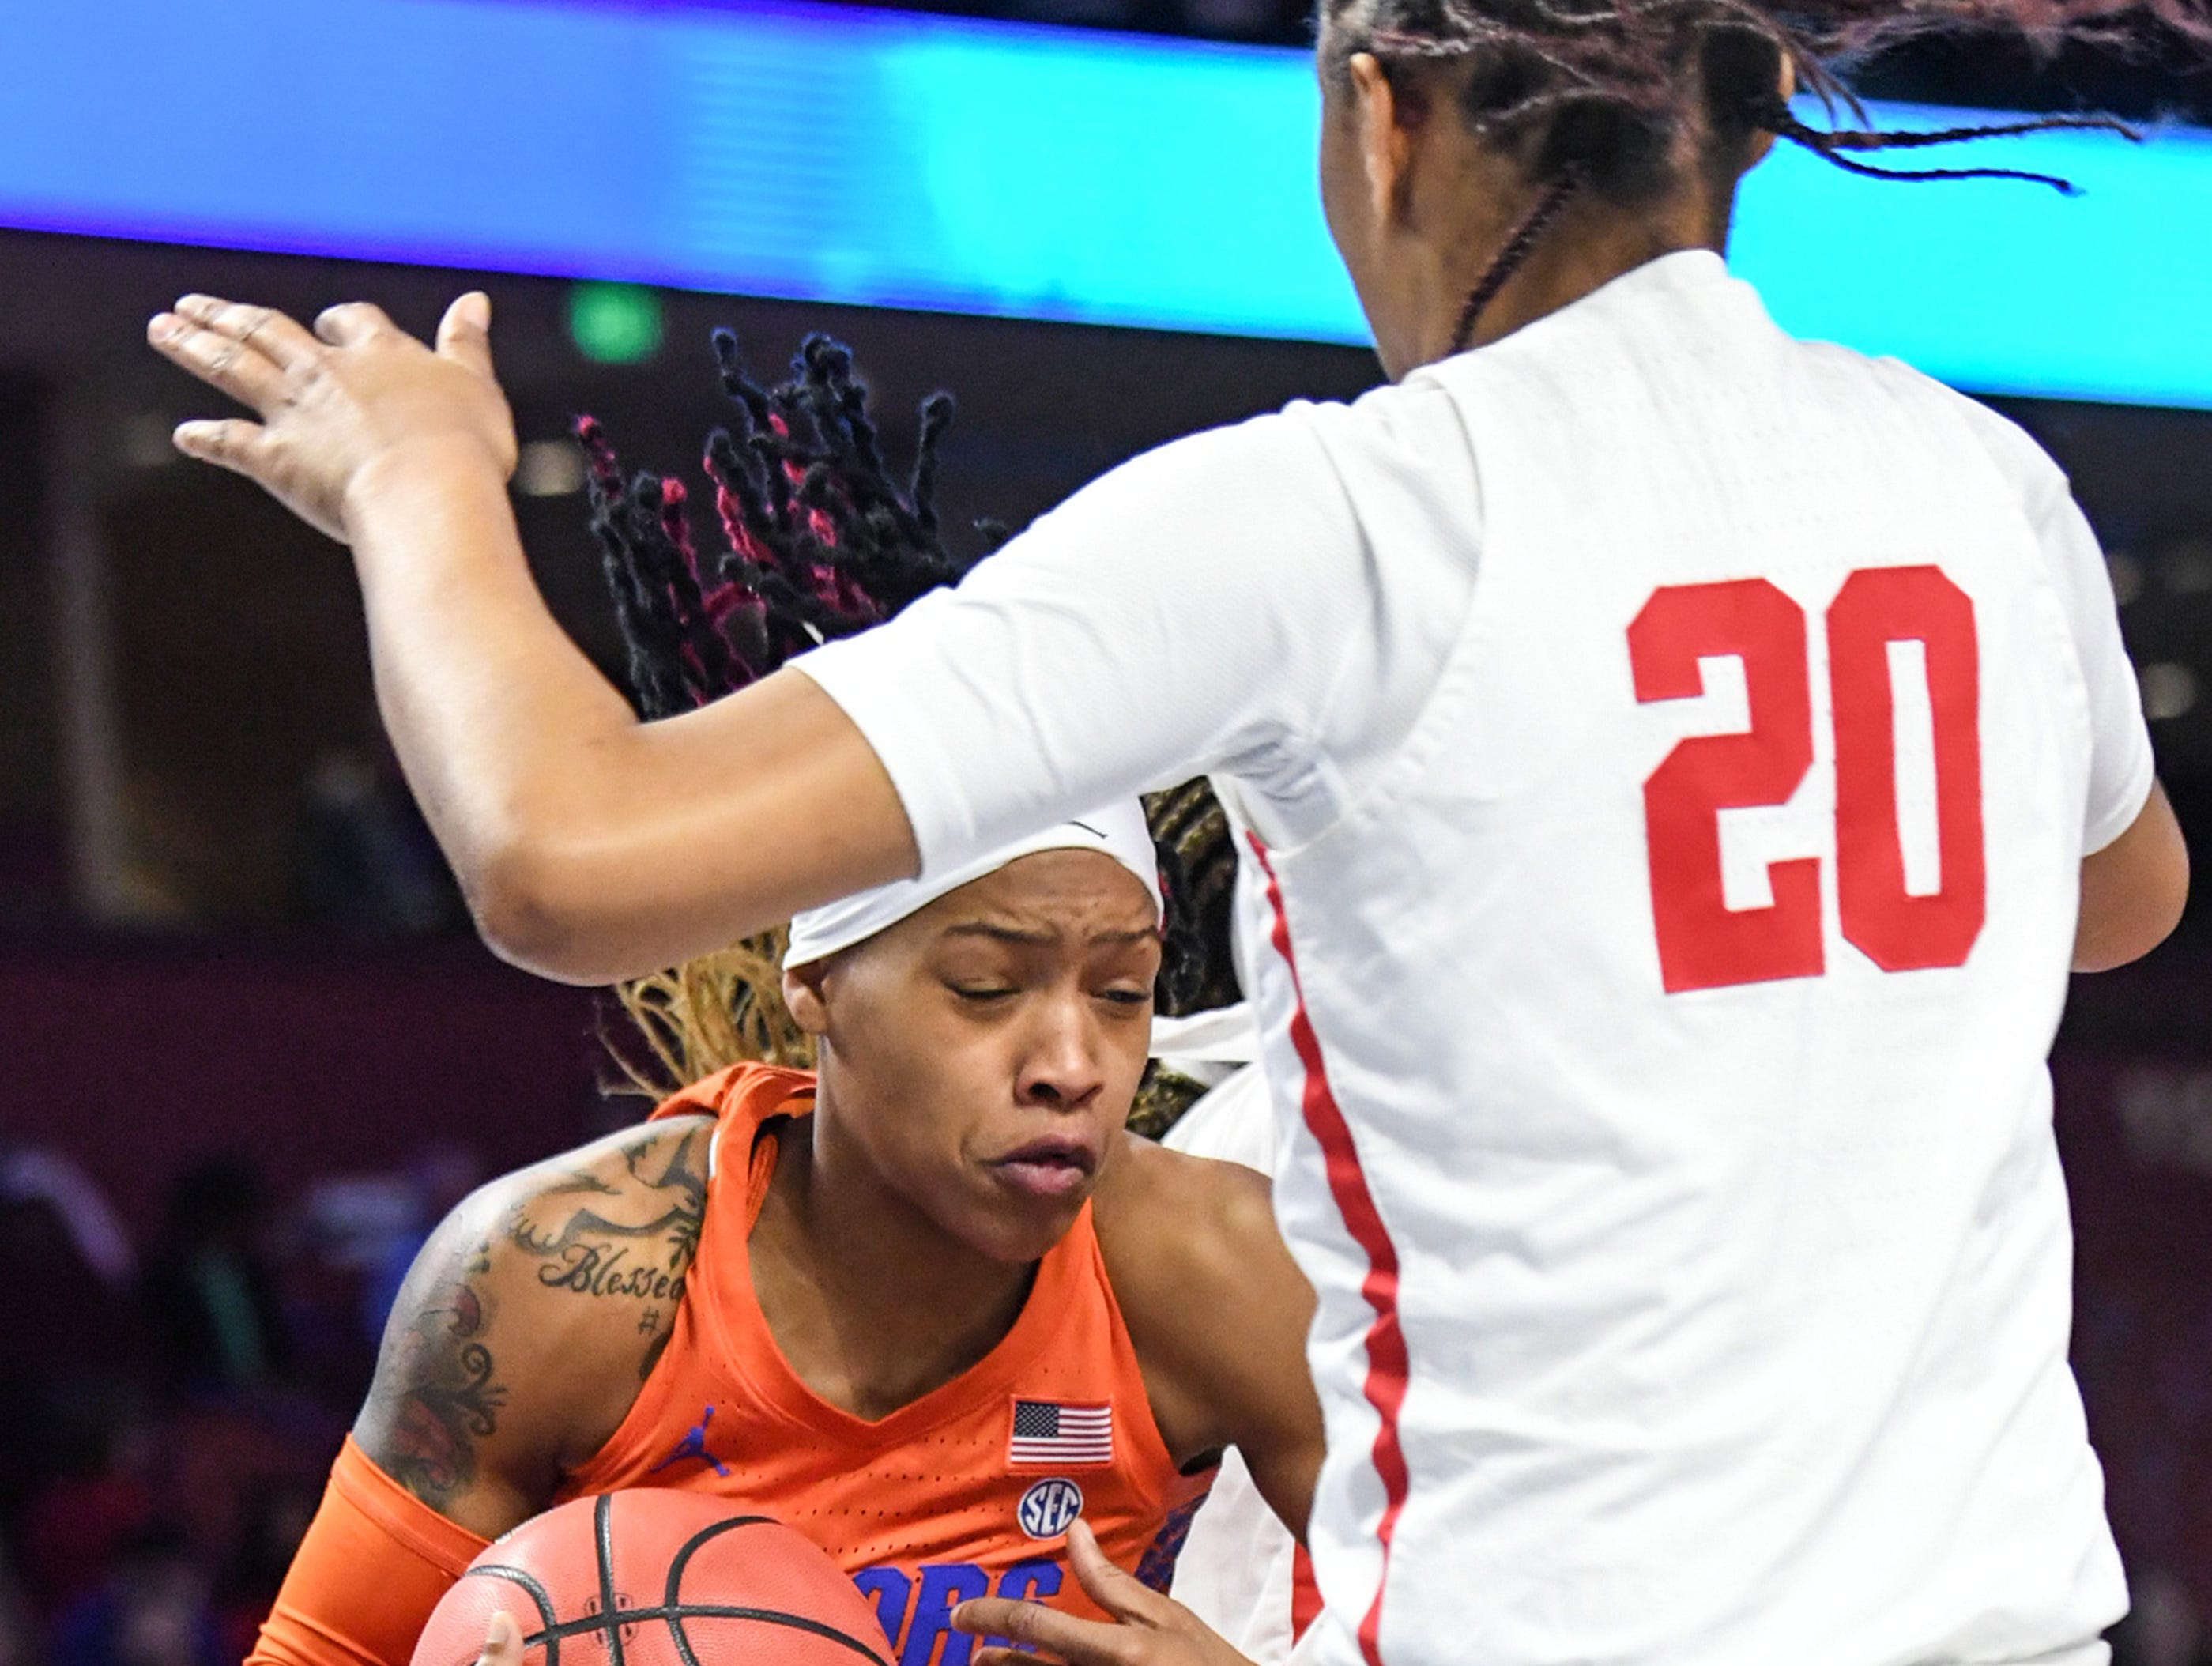 Florida guard Funda Nakkasoglu(3) rebounds near Ole Miss freshman Mahogany Matthews(20) during the first quarter of the Southeastern Conference Women's Tournament game at Bon Secour Wellness Arena in Greenville Wednesday, March 6, 2019.